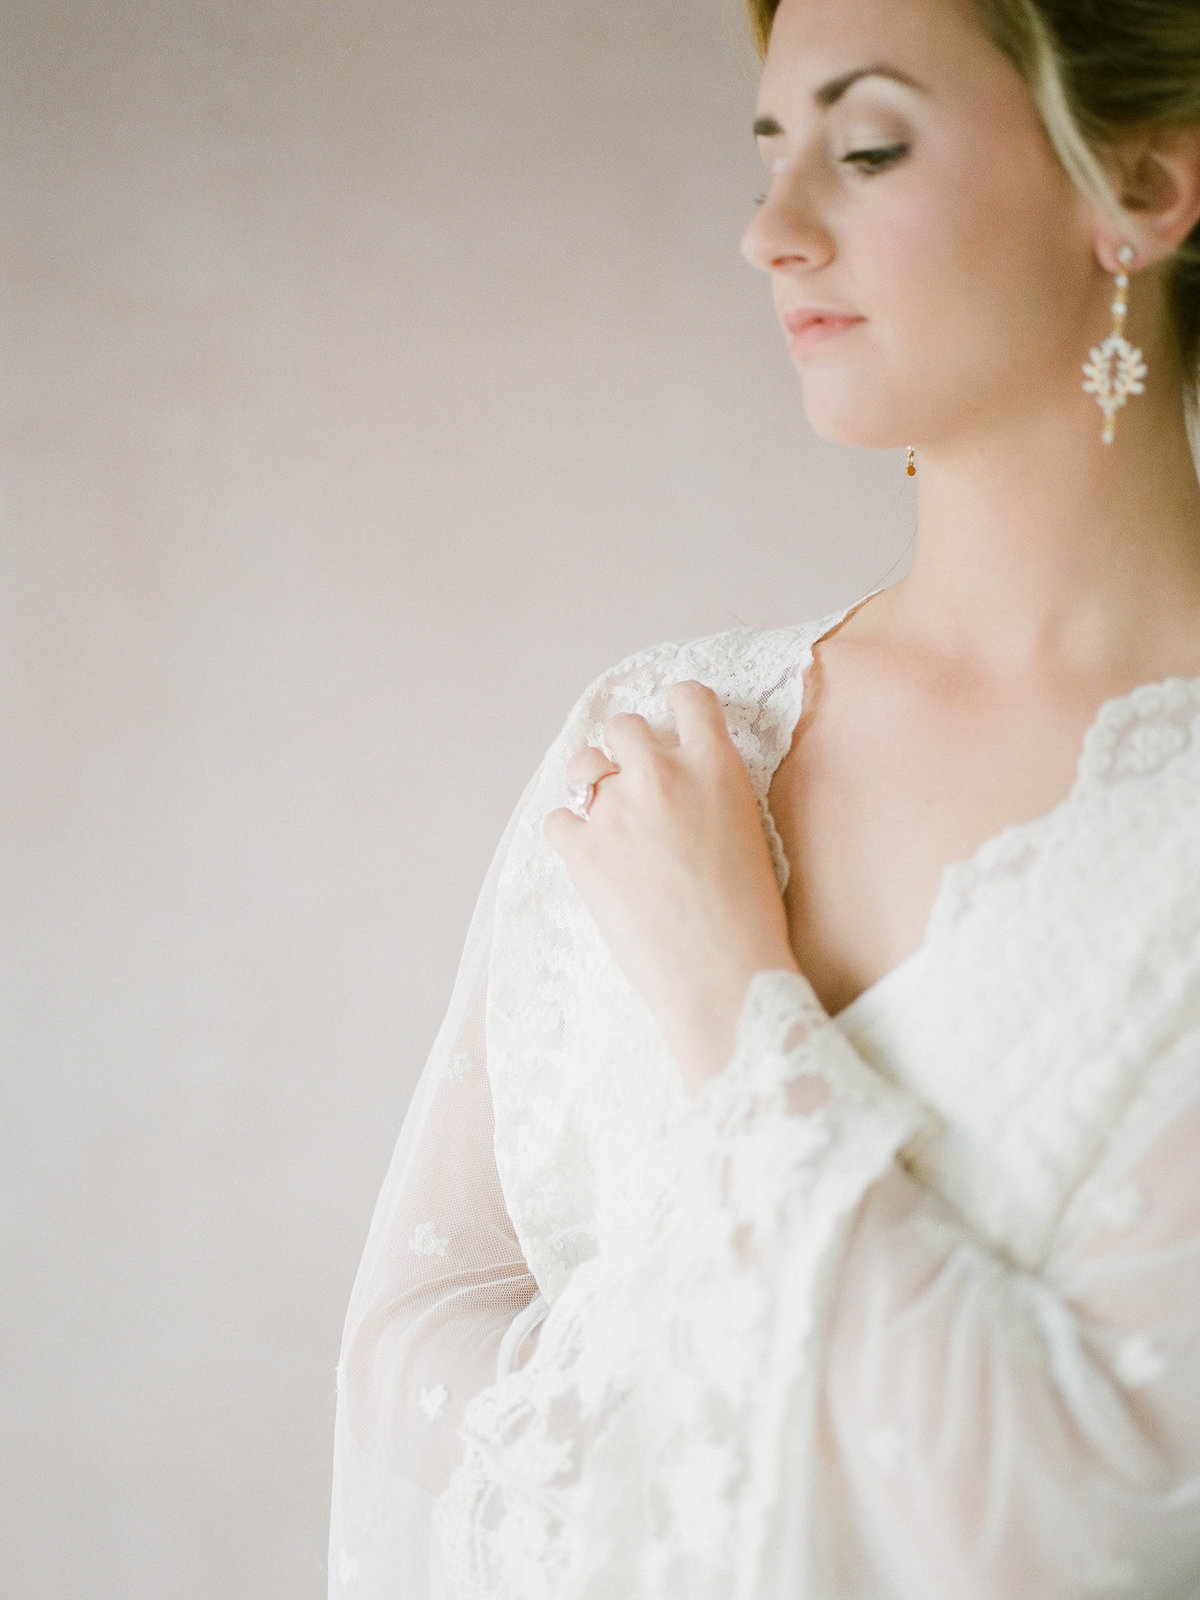 Fine Art Bridal Portraits - Sarah Sunstrom Photography - Film Wedding Photographer - 33